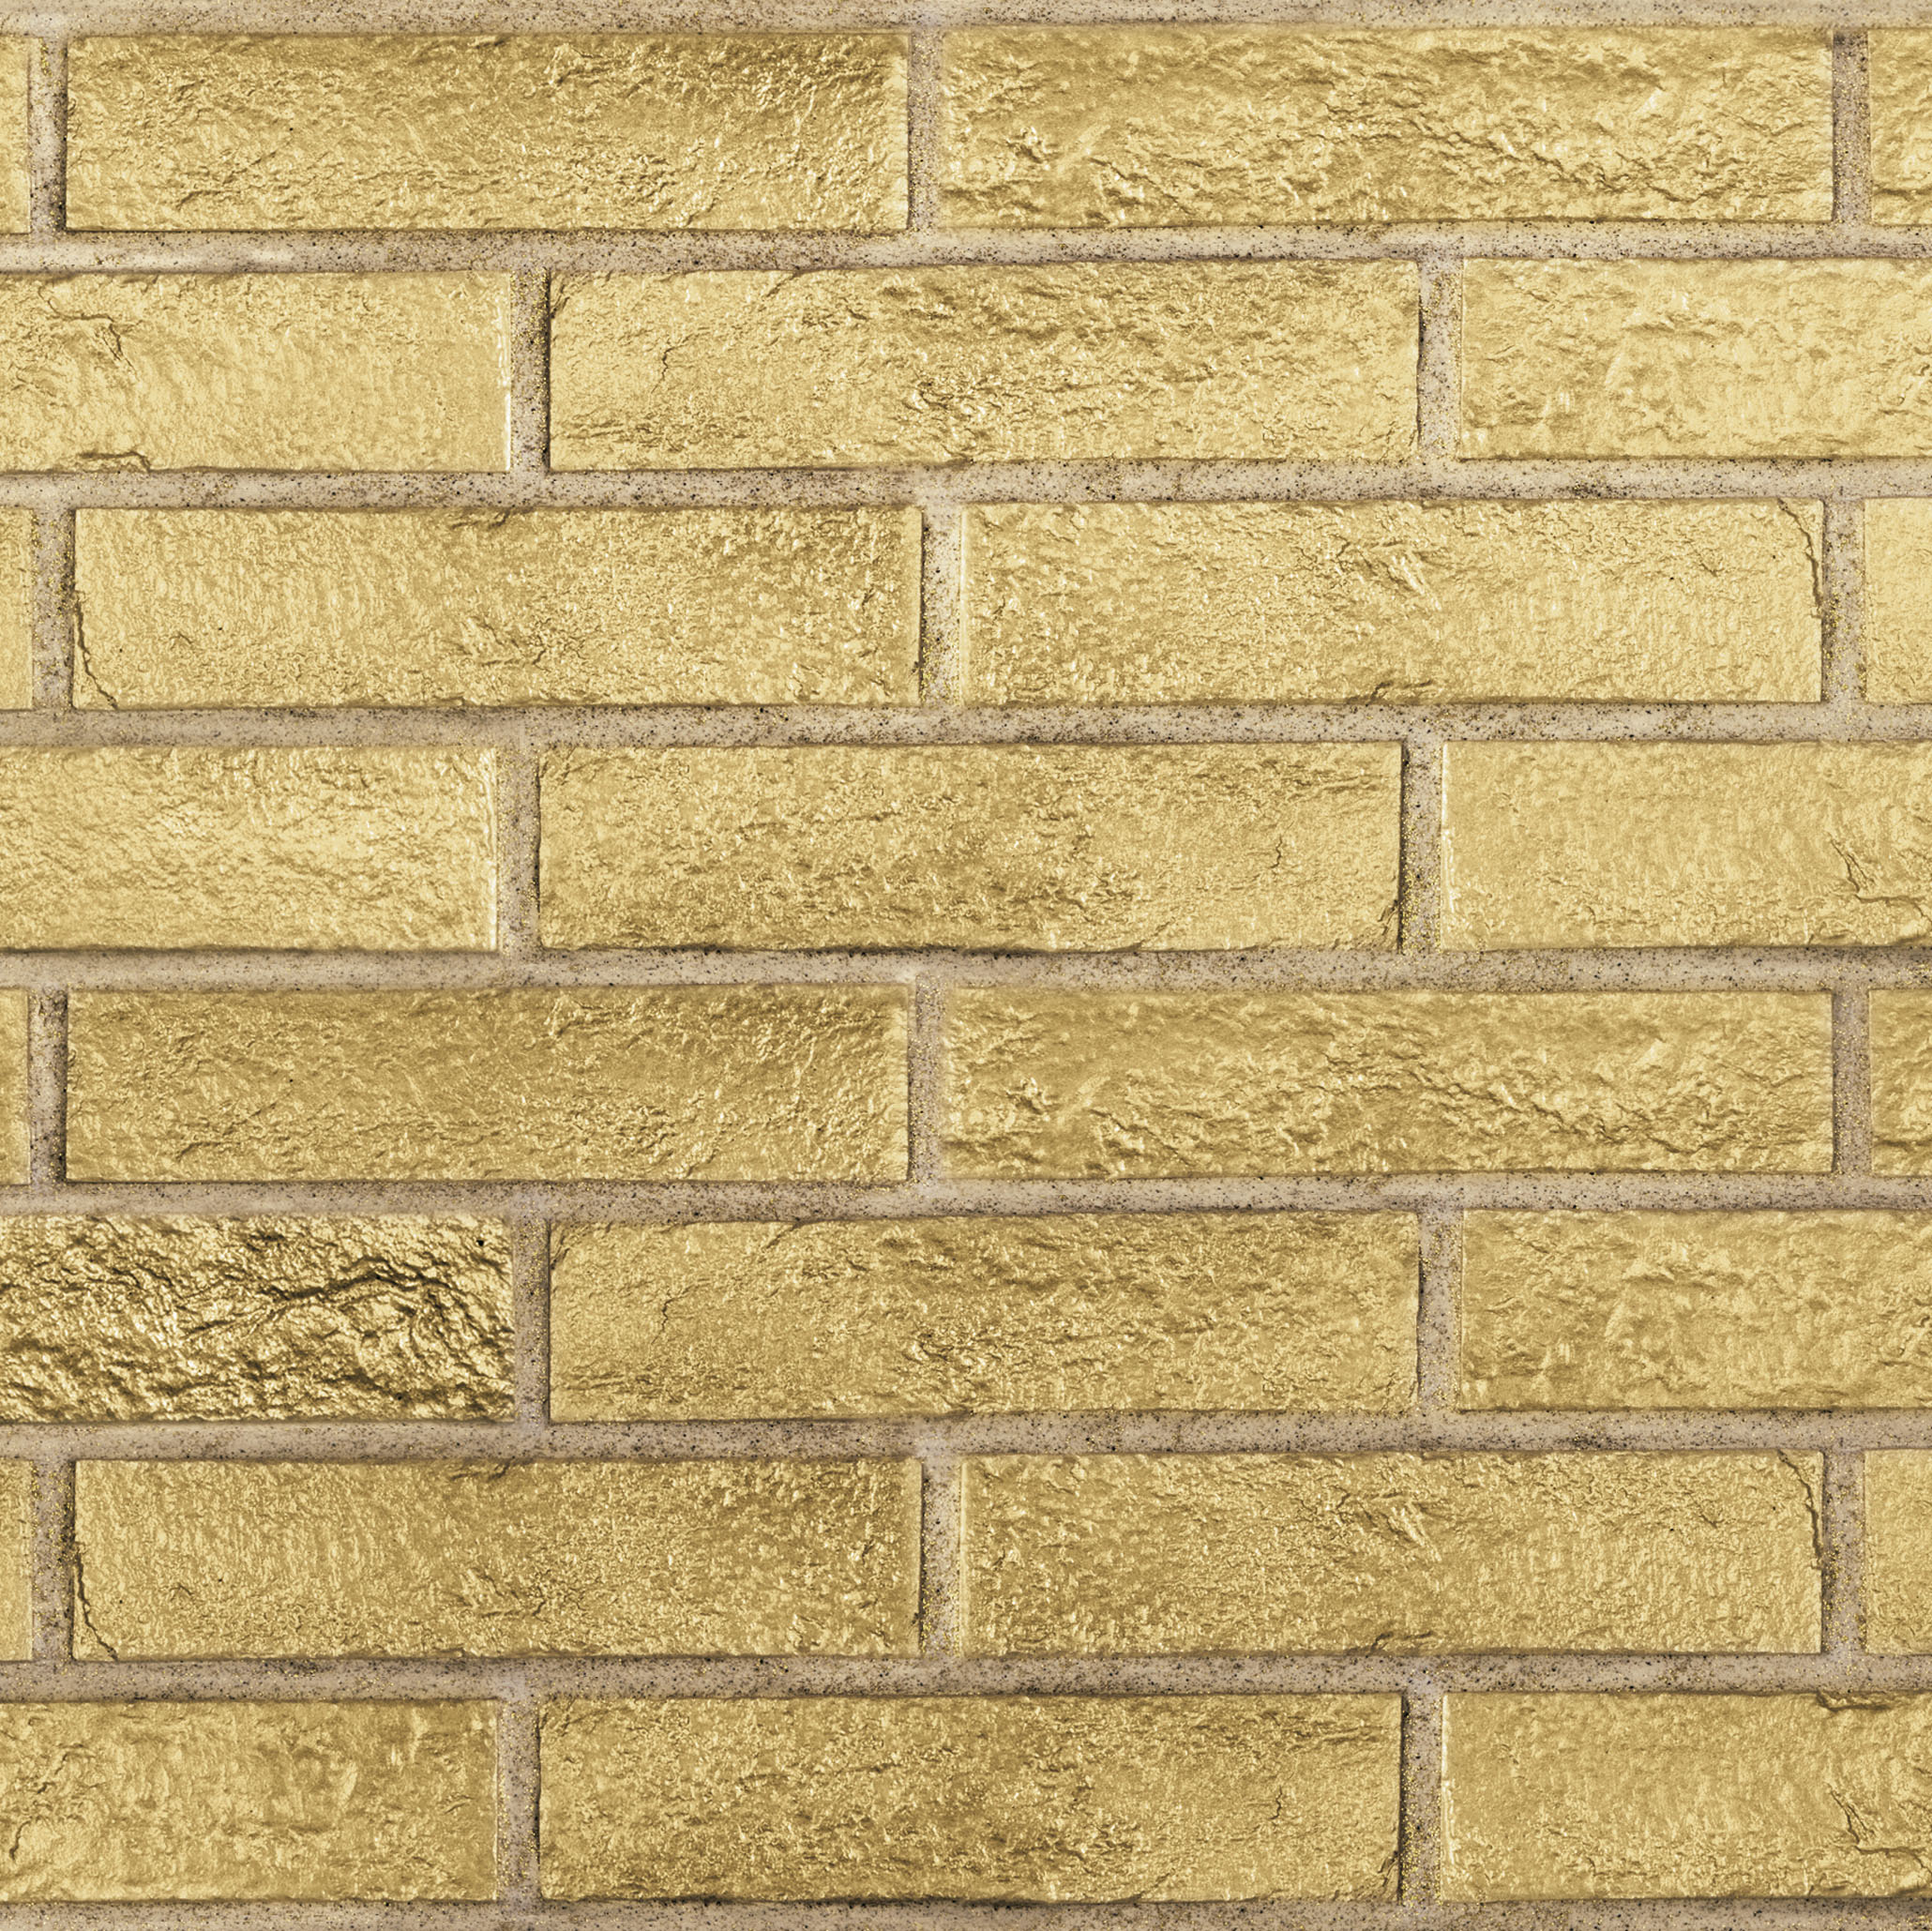 BRICK GOLD - 6x25_HD.jpg